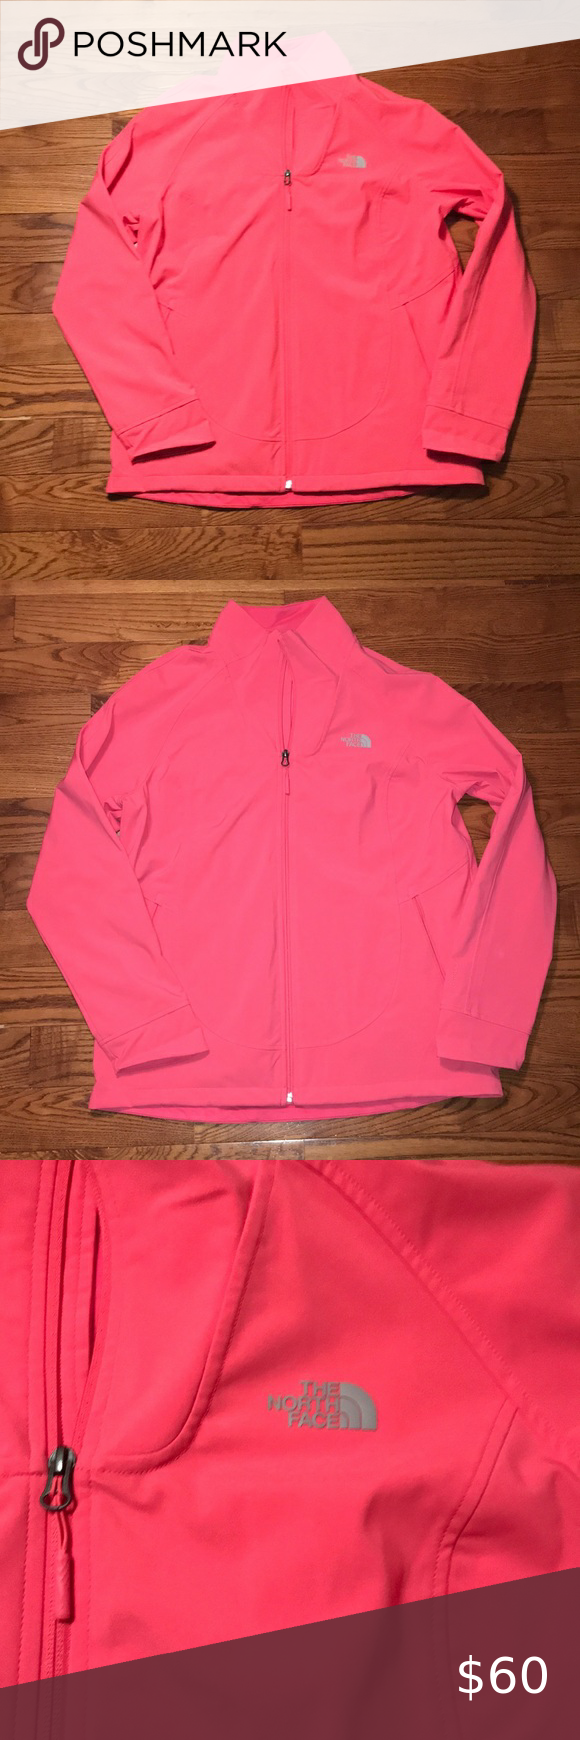 North Face Jacket Pink North Face Jacket Size Xl The North Face Jackets Coats North Face Jacket Pink North Face Jacket Pink North Face [ 1740 x 580 Pixel ]